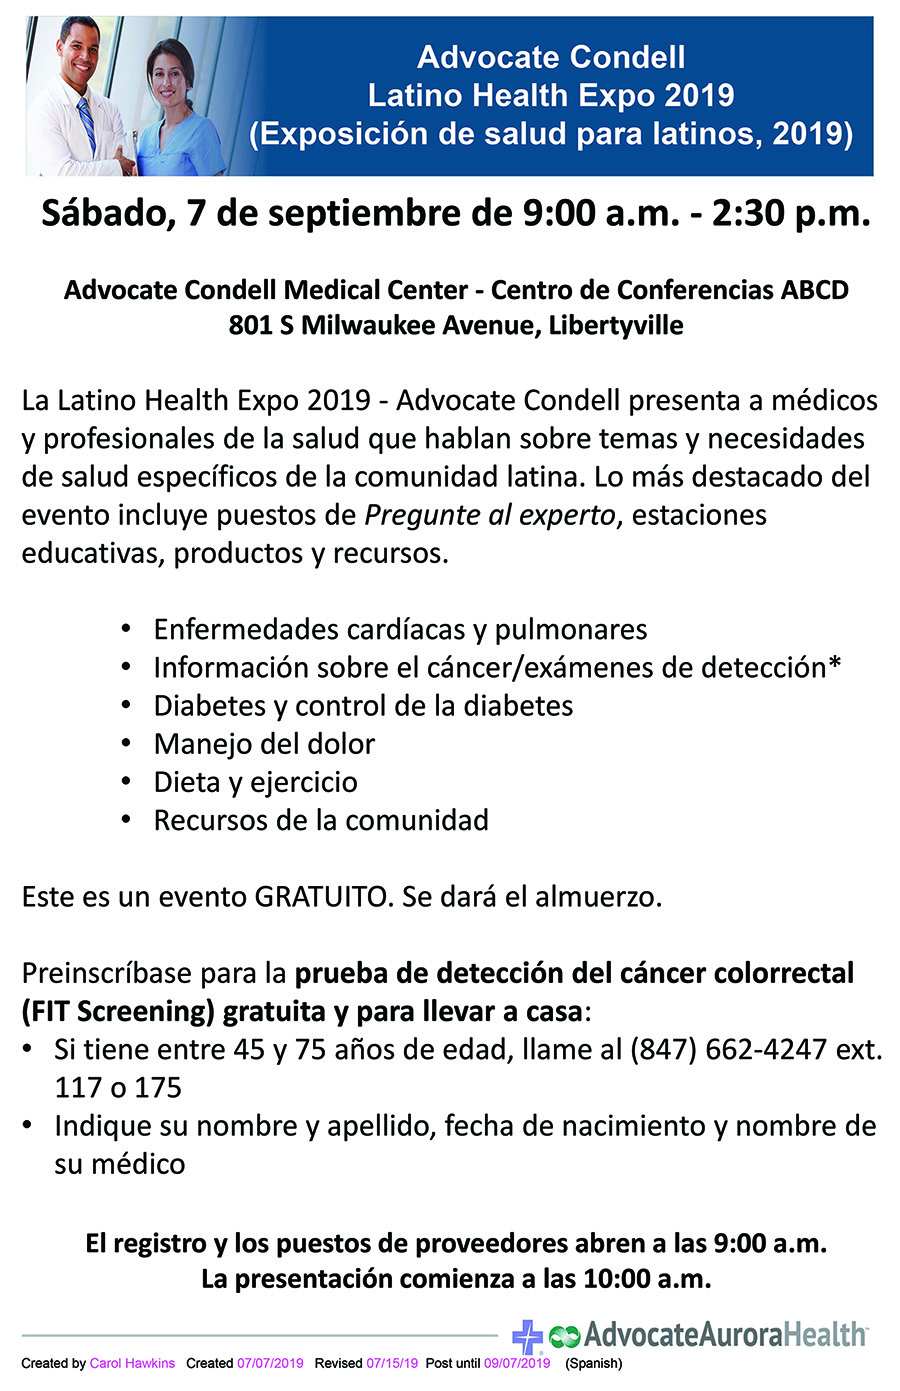 2019 aah systemwide diverse multicultural flyer lhe flyer spanish noftge